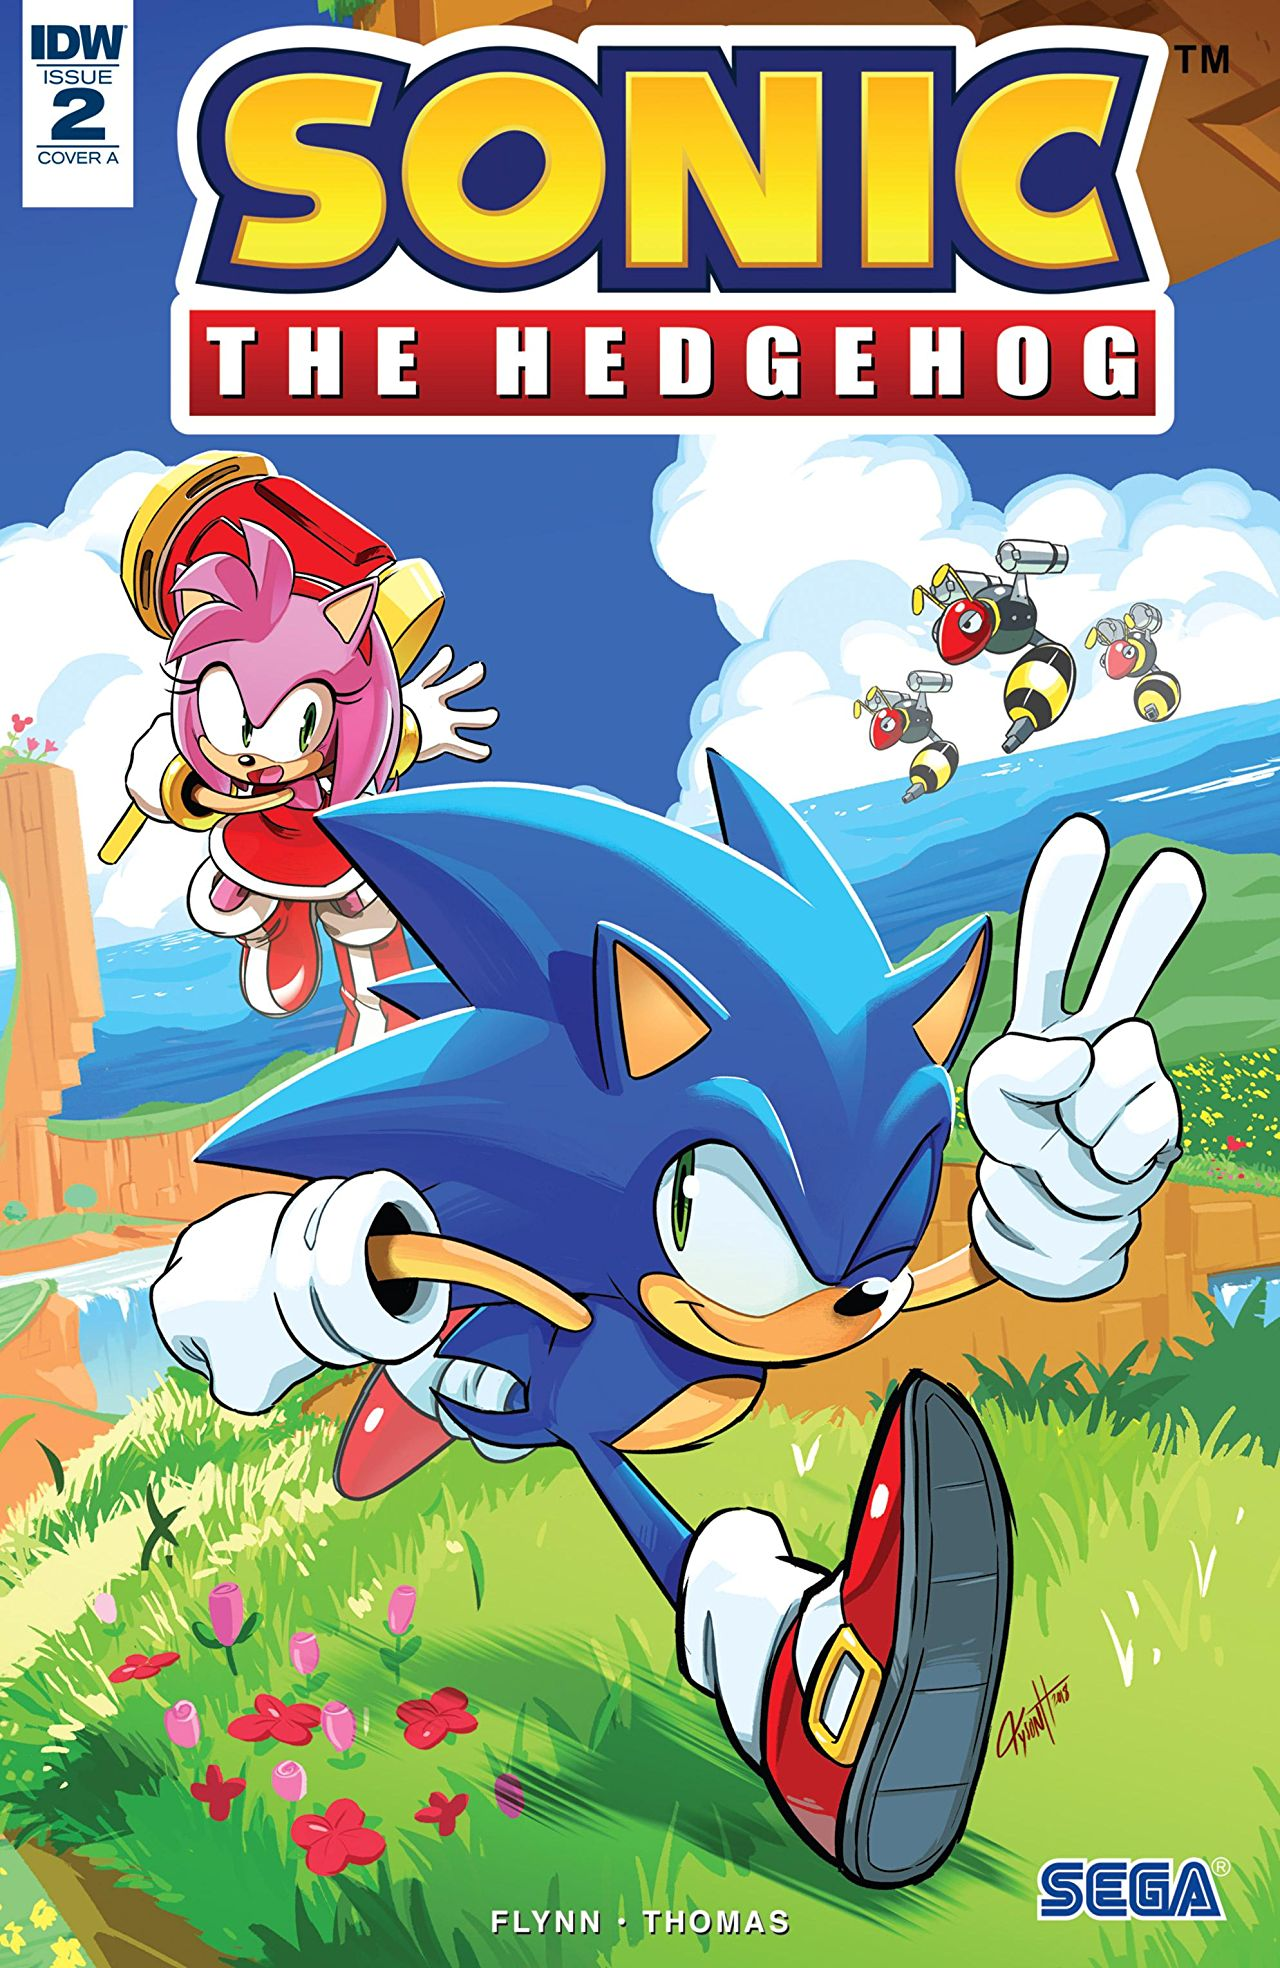 Sonic the hedgehog IDW publishing issue 2 ian flynn amy rose